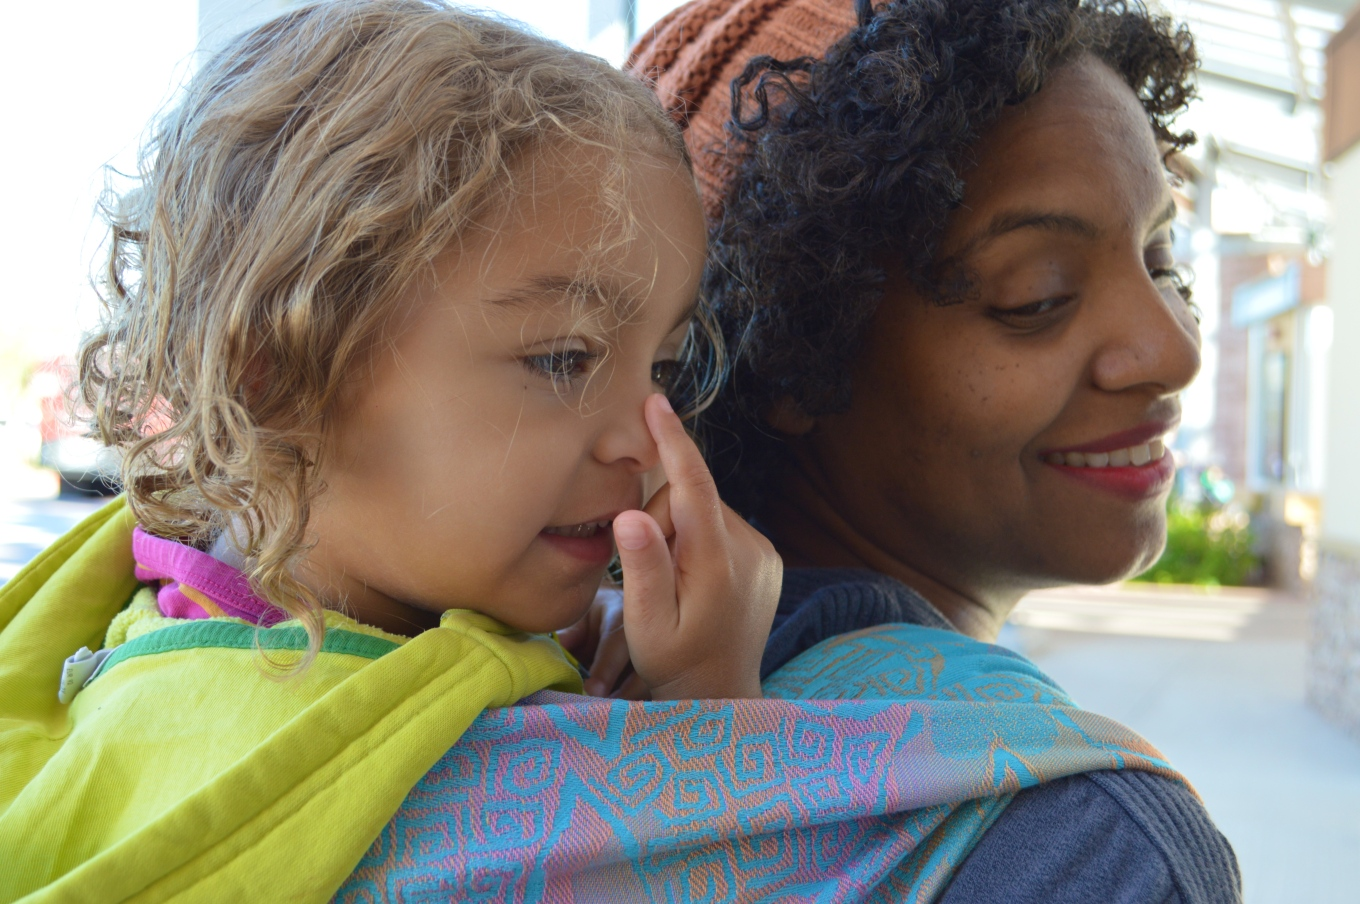 Medium brown Momma with natural curly hair wears orange-brown knit cap and red lipstick. Her light brown, curly blond haired toddler wears a neon yellow hoodie and is pointing to her nose. Baby is on Momma's back in a Double Hammock carry in a gradient orange to pink on pale blue background woven wrap with embossed jonquil flowers.